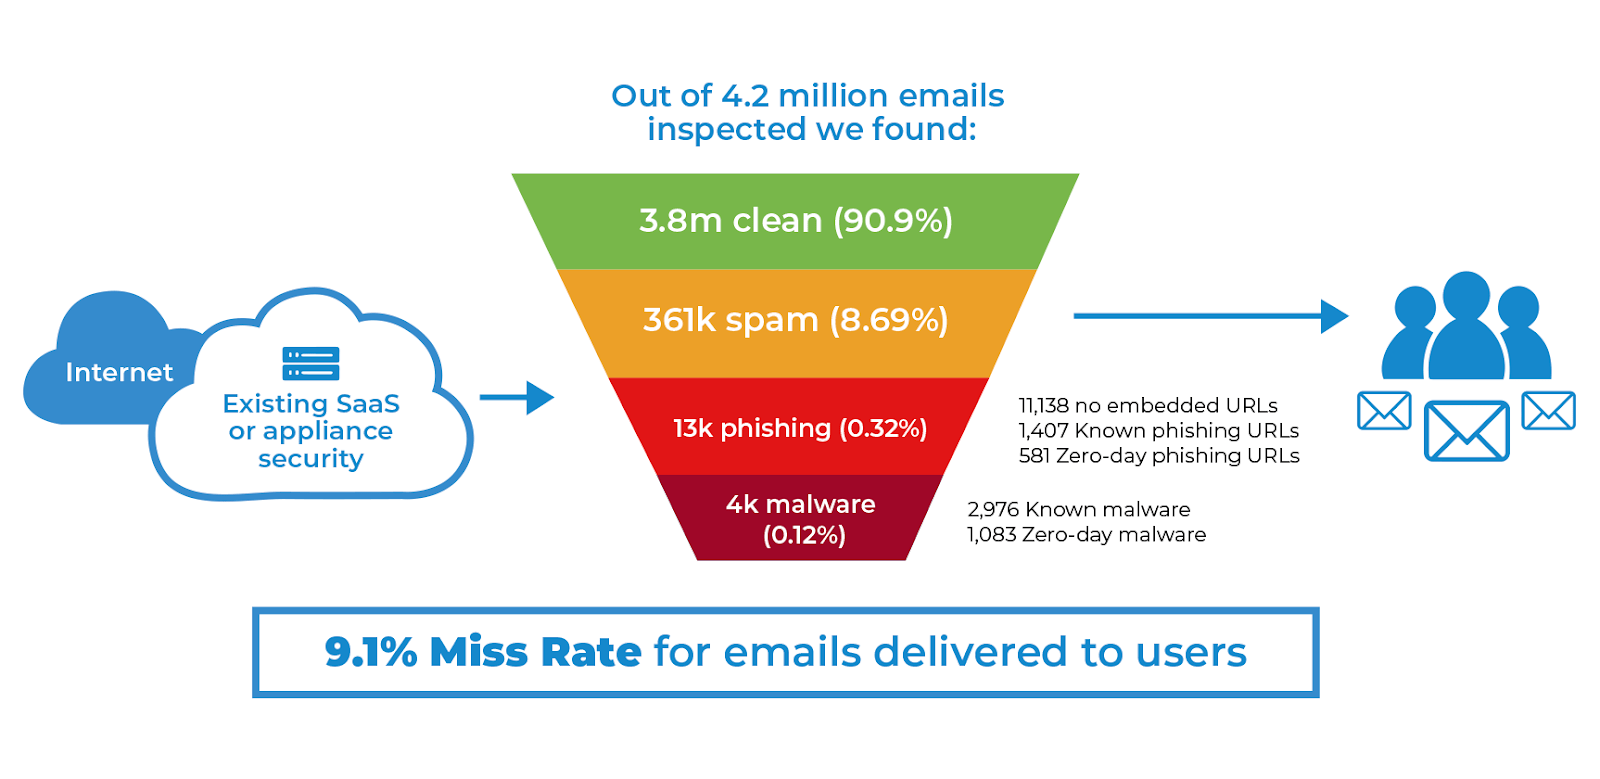 out of 4.2 million emails inspected we found, 9.1% Miss Rate of emails delivered to users